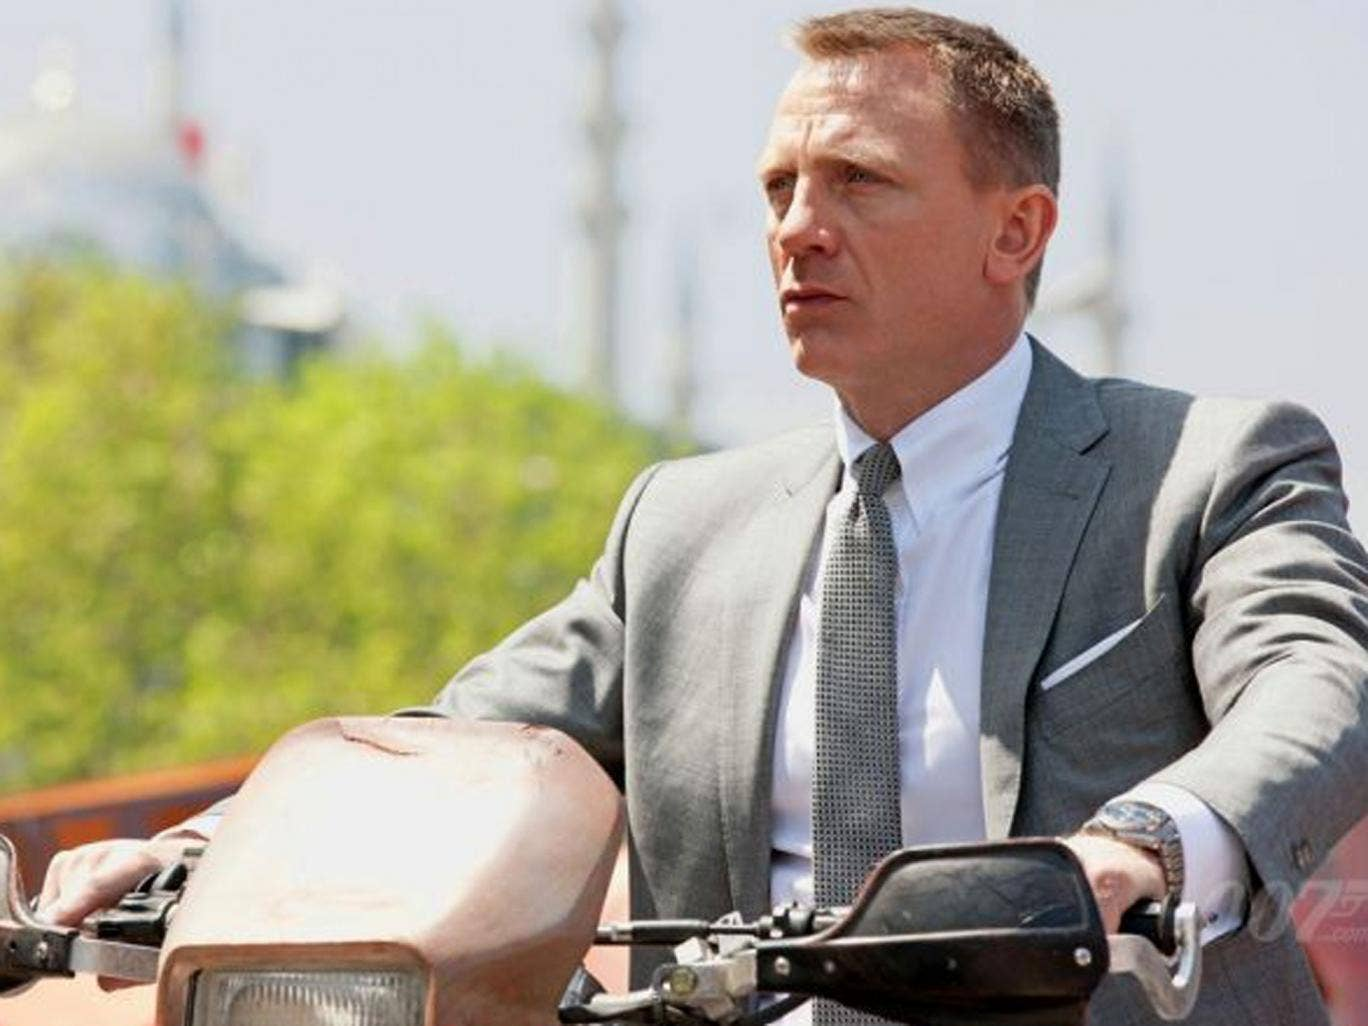 Daniel Craig, as James Bond in Skyfall